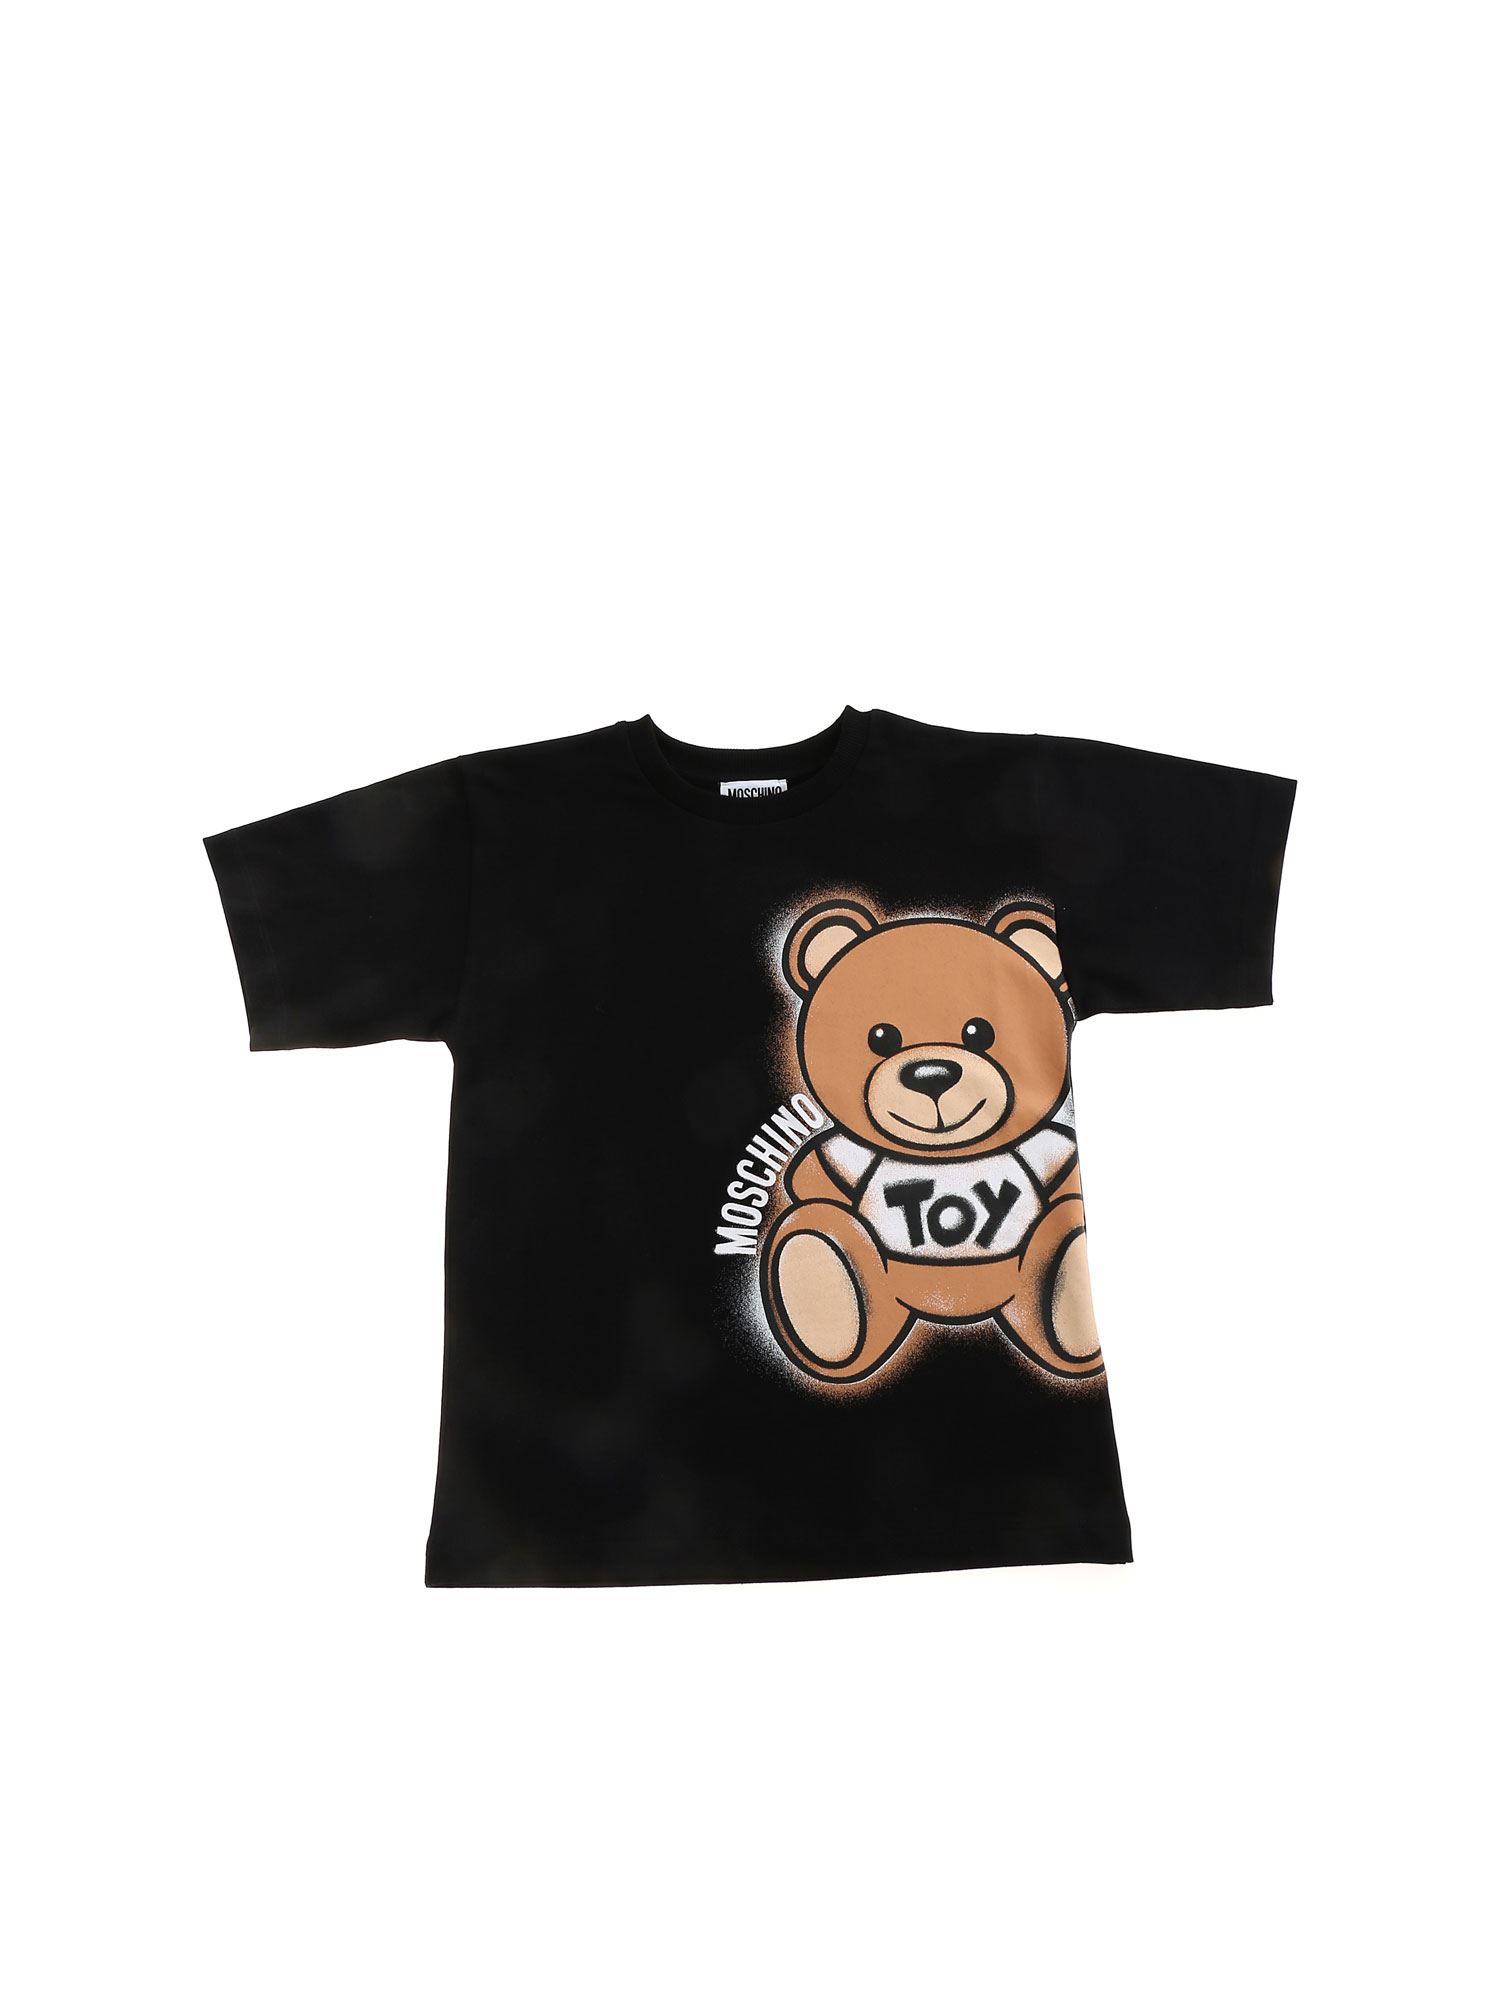 Moschino Cottons MAXI T-SHIRT SPRAY TEDDY IN BLACK